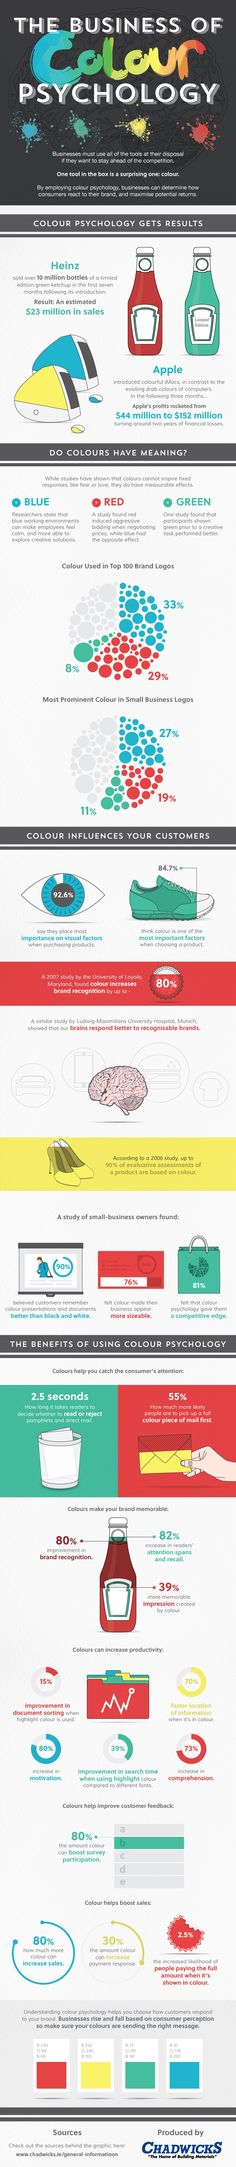 The Business of Colour Psychology [Infographic]